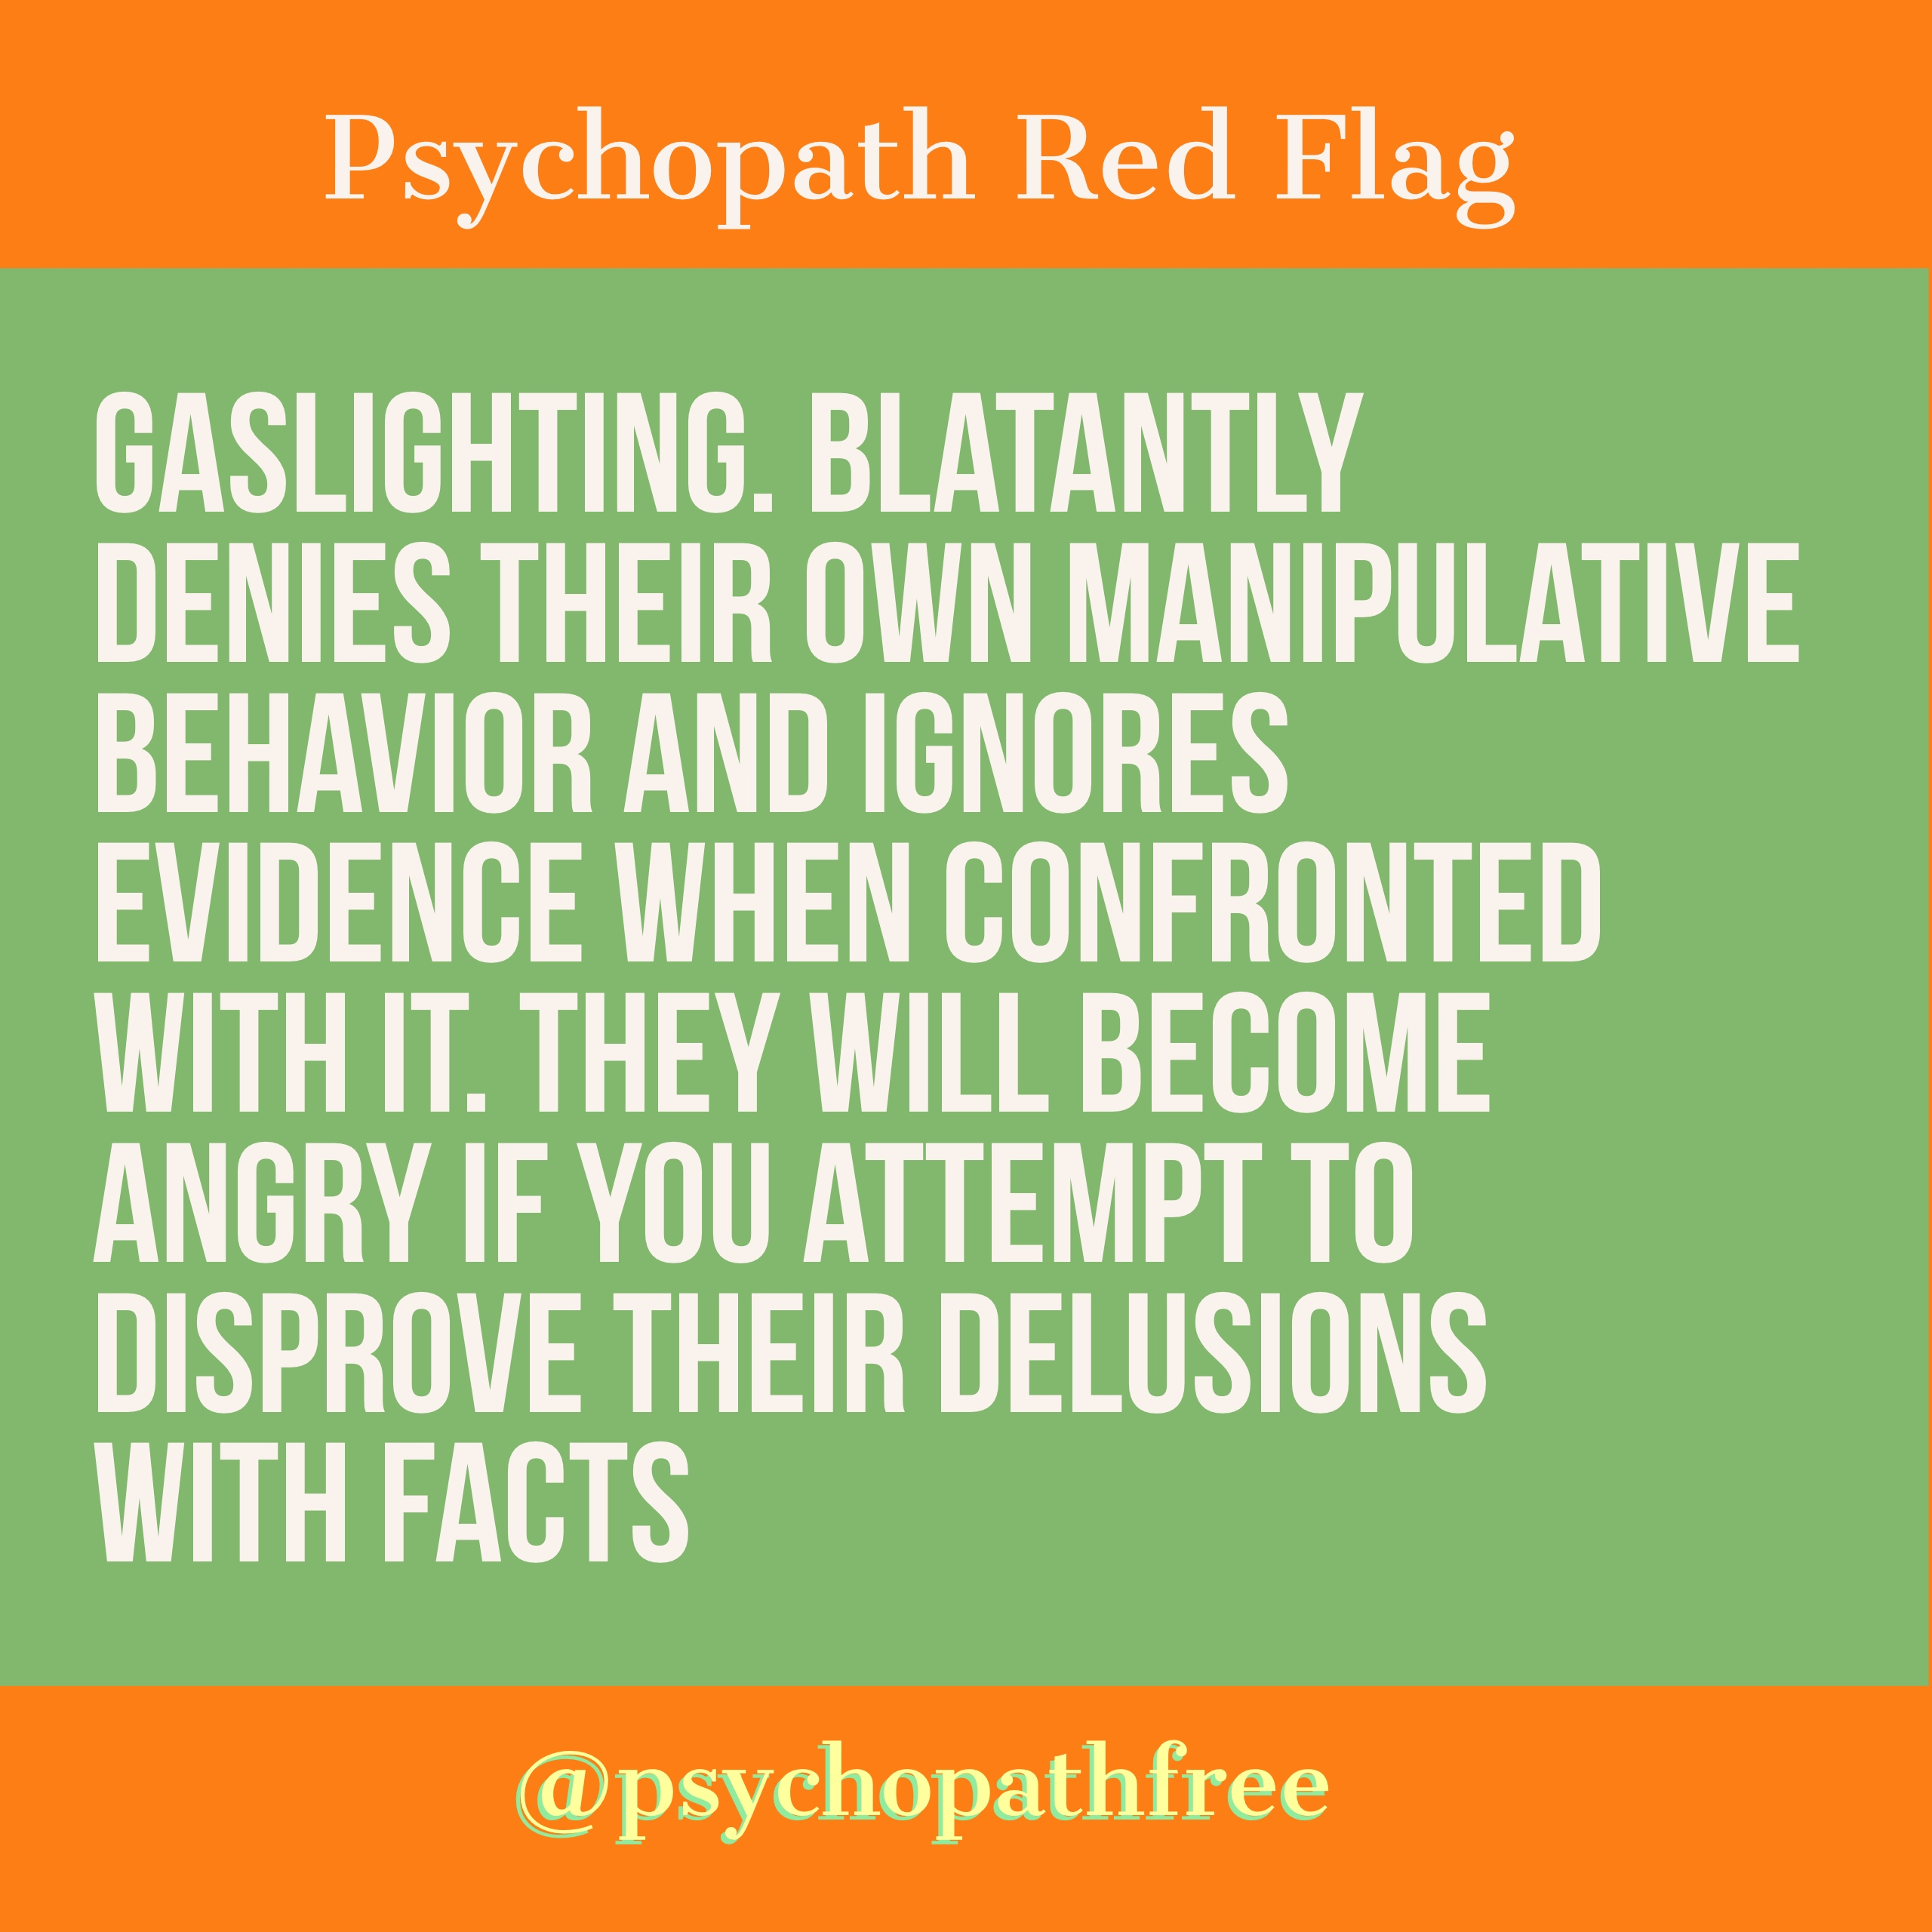 gay dating red flags psychopath